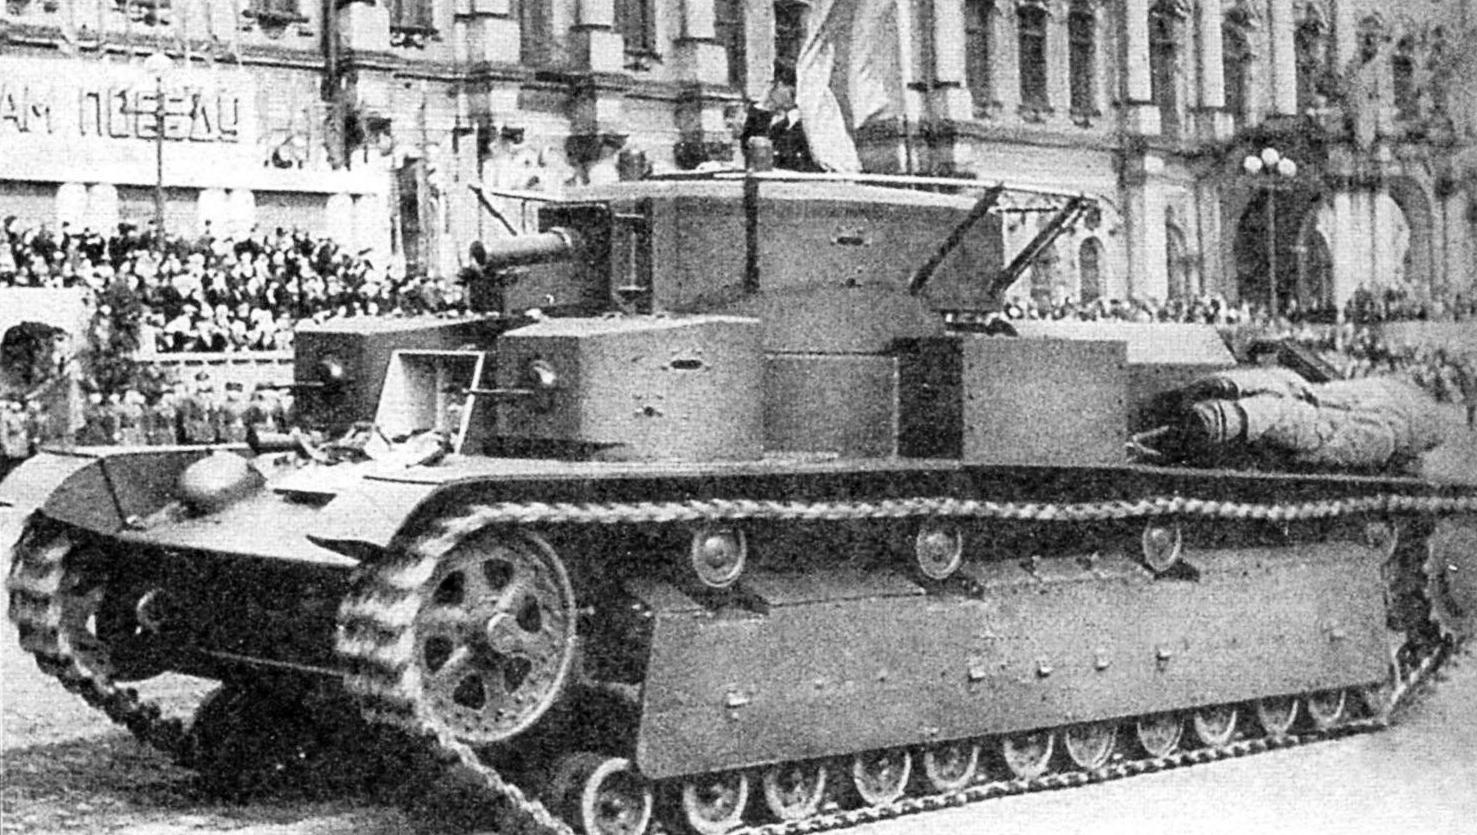 Tank T-28 OBR. 1936 a classic three-towered layout with bunk location of the cannon and machine gun armament. Parade armor in Leningrad